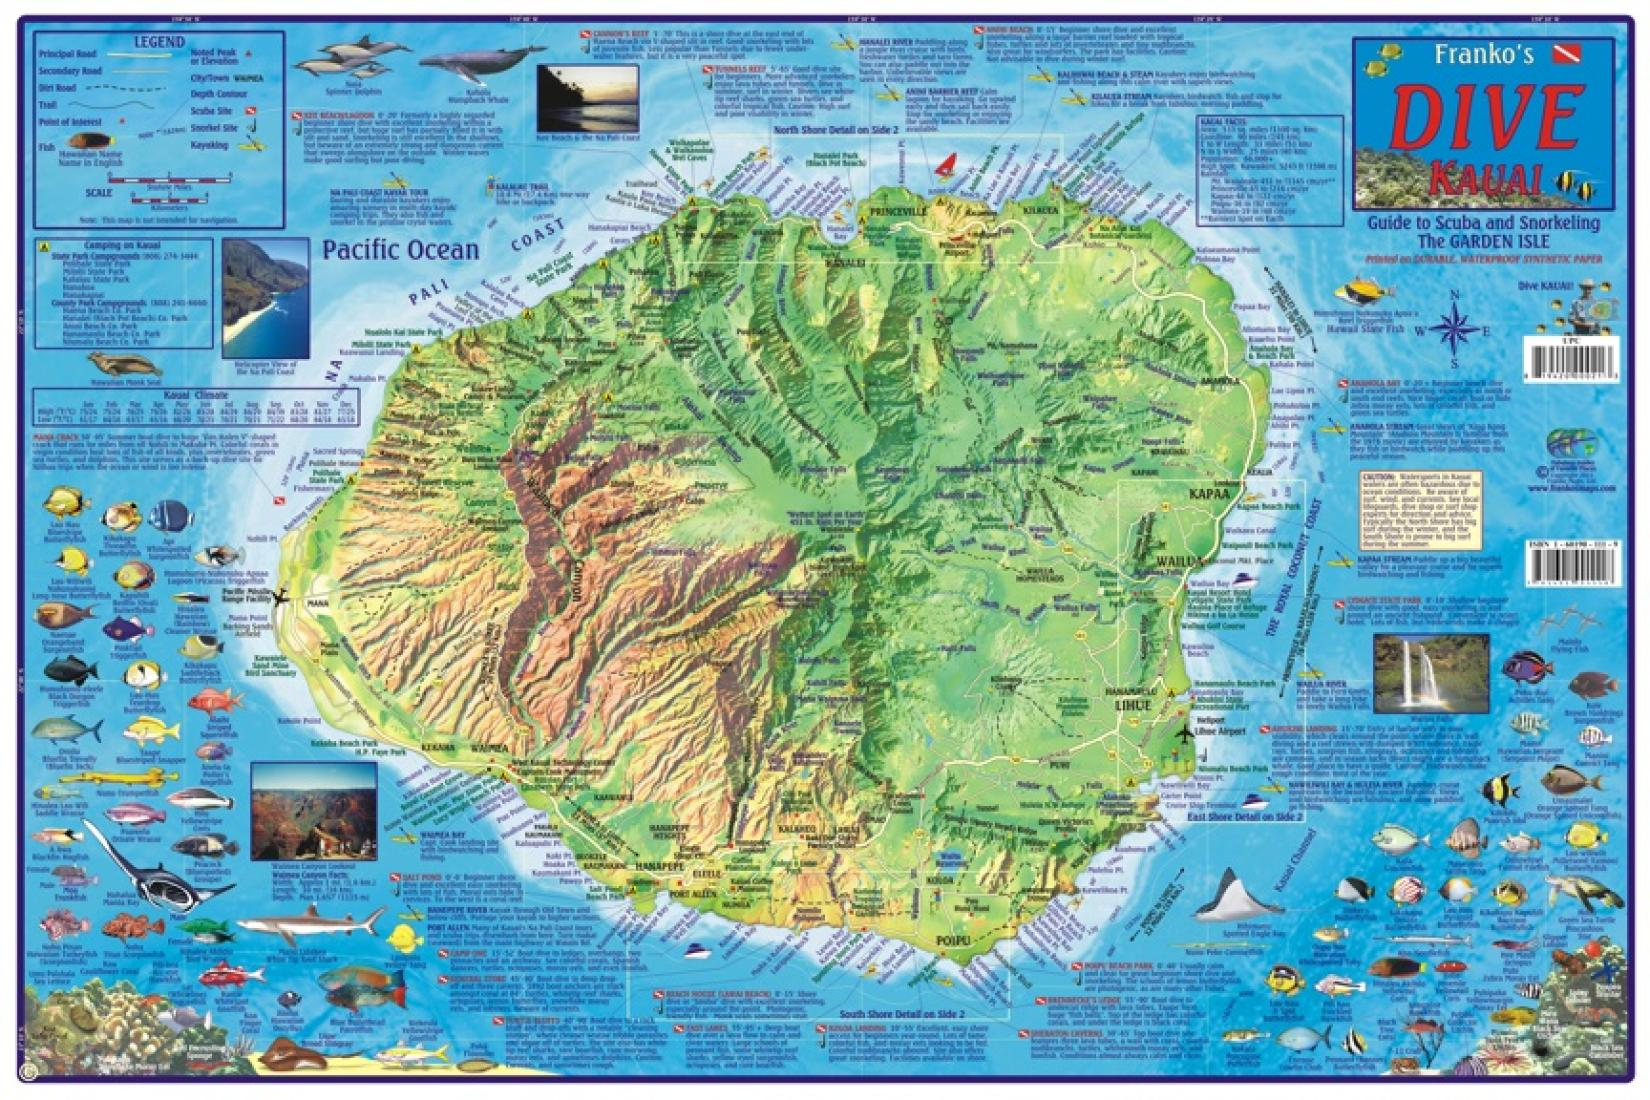 Hawaii Map Kauai Dive Map laminated 2011 by Frankos Maps Ltd